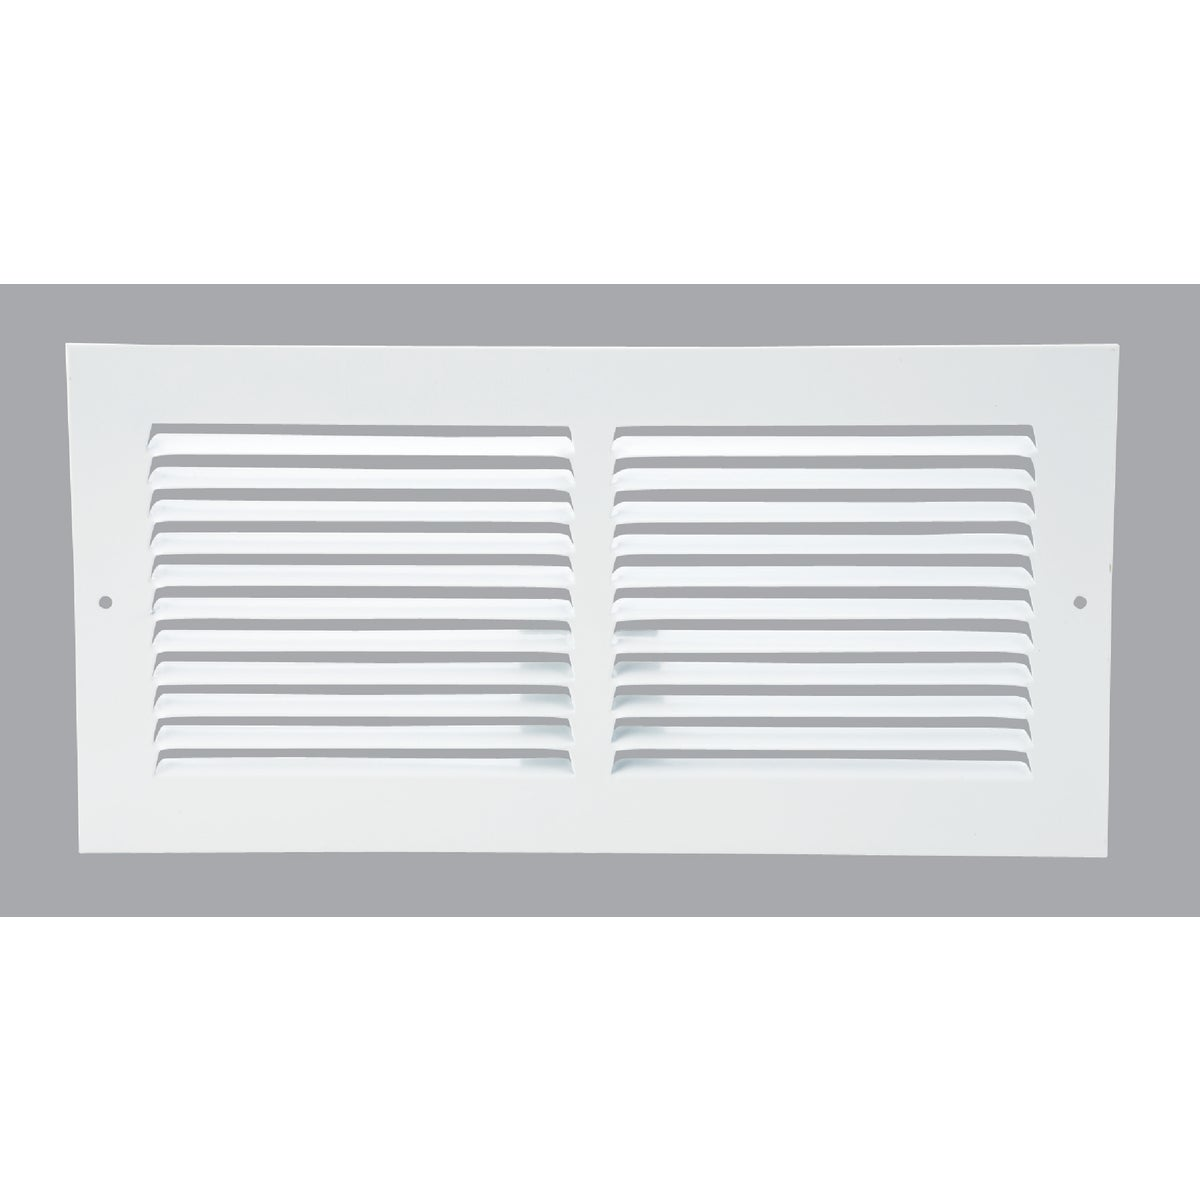 6X14WH RETURN AIR GRILLE - 1RA1406WH by Do it Best